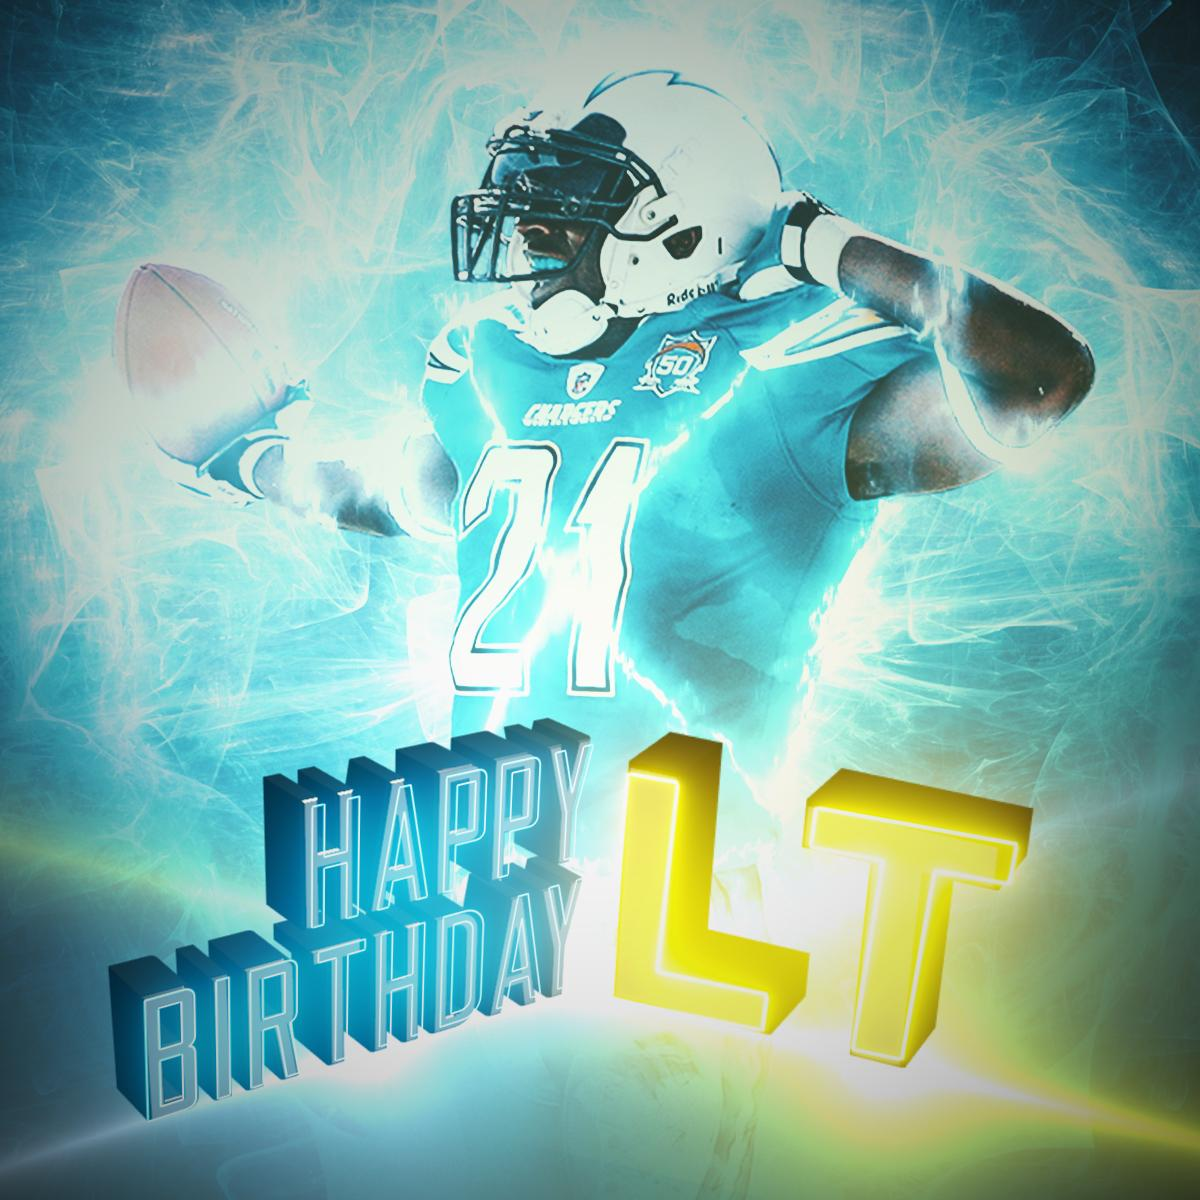 5x Pro Bowler. 2006 MVP.And soon-to-be @ProFootballHOF inductee.Have a HAPPY birthday, @LT_21! 🎉🎉🎉